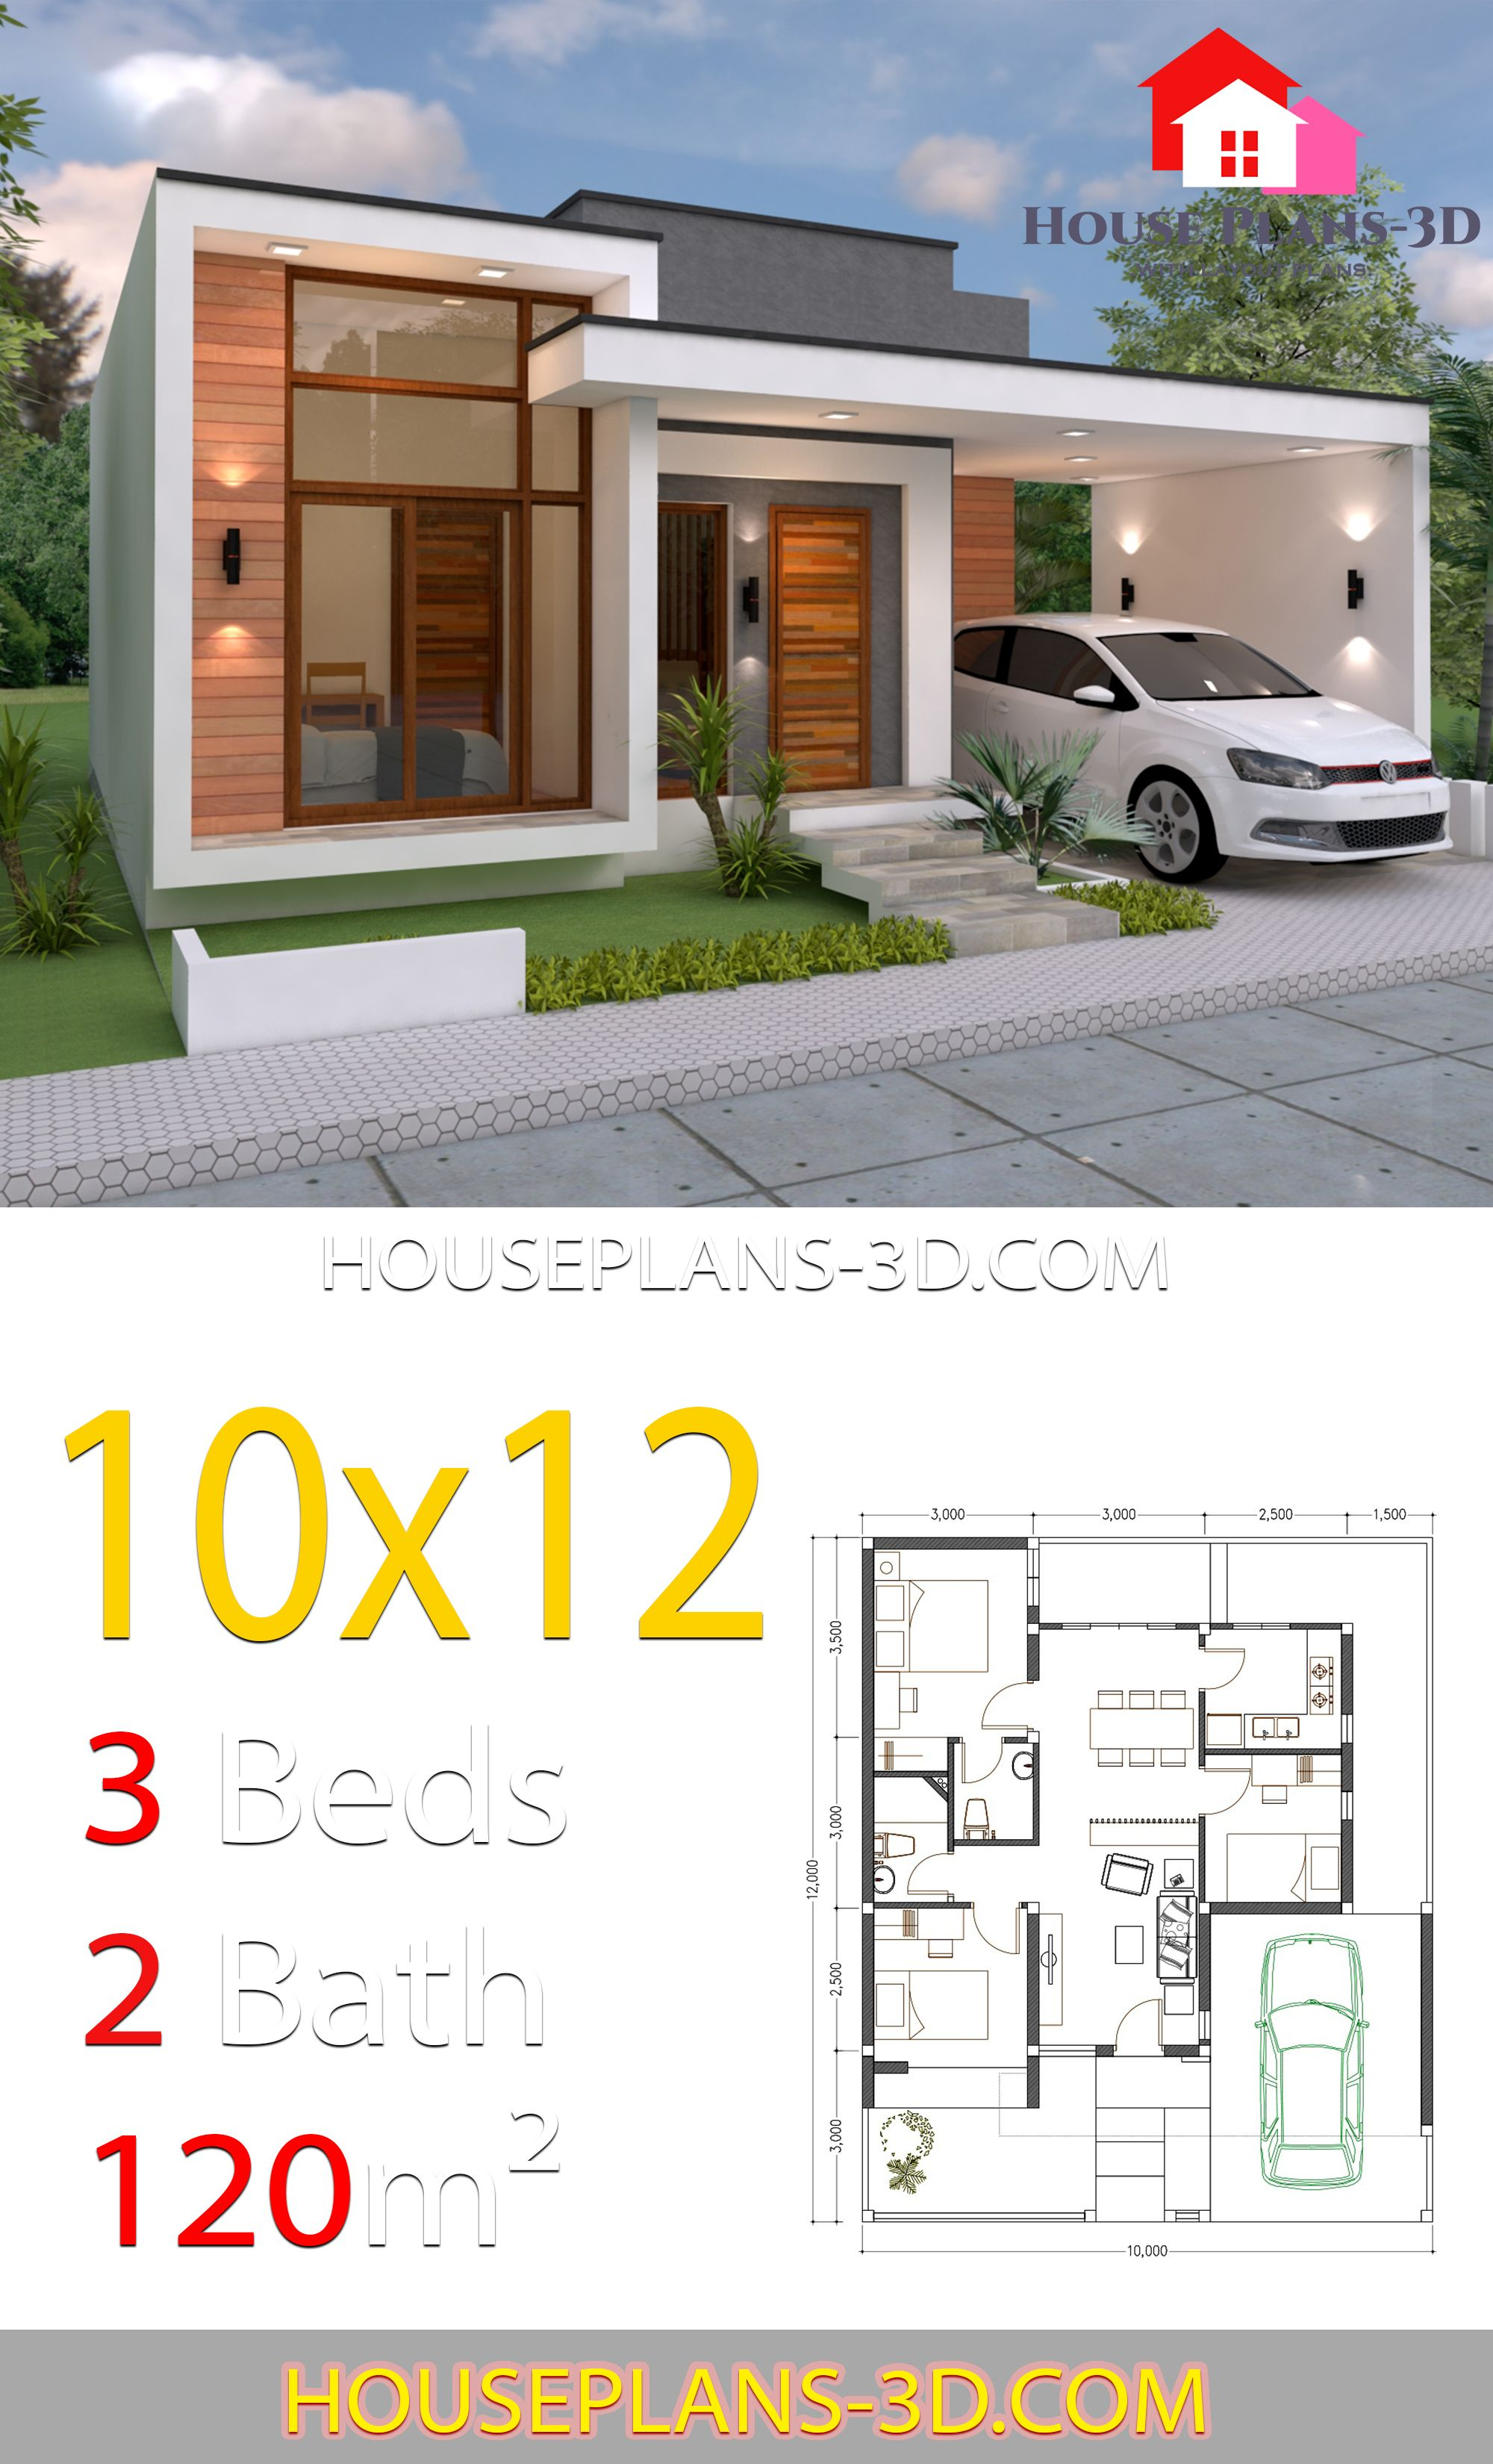 House Design 10x12 With 3 Bedrooms Terrace Roof House Plans 3d In 2020 Minimalist House Design House Plans House Construction Plan